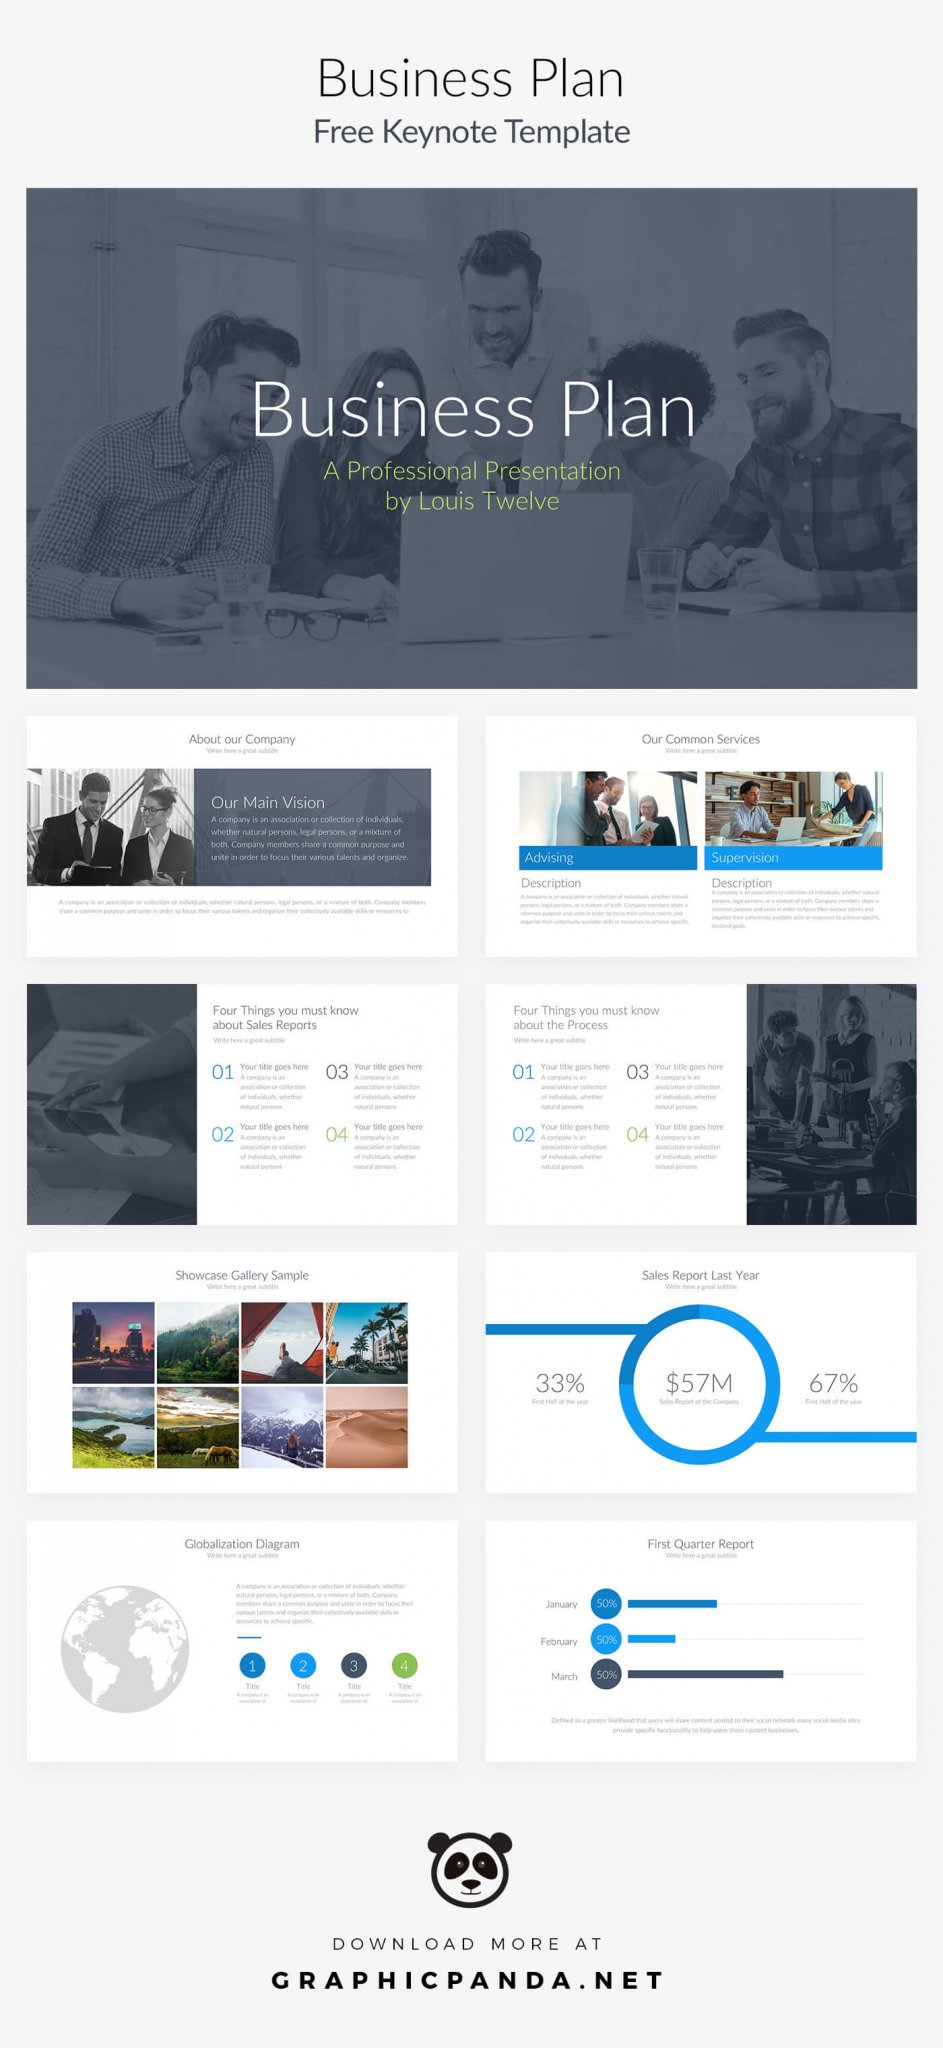 free keynote templates - business plan pitch deck, Powerpoint templates